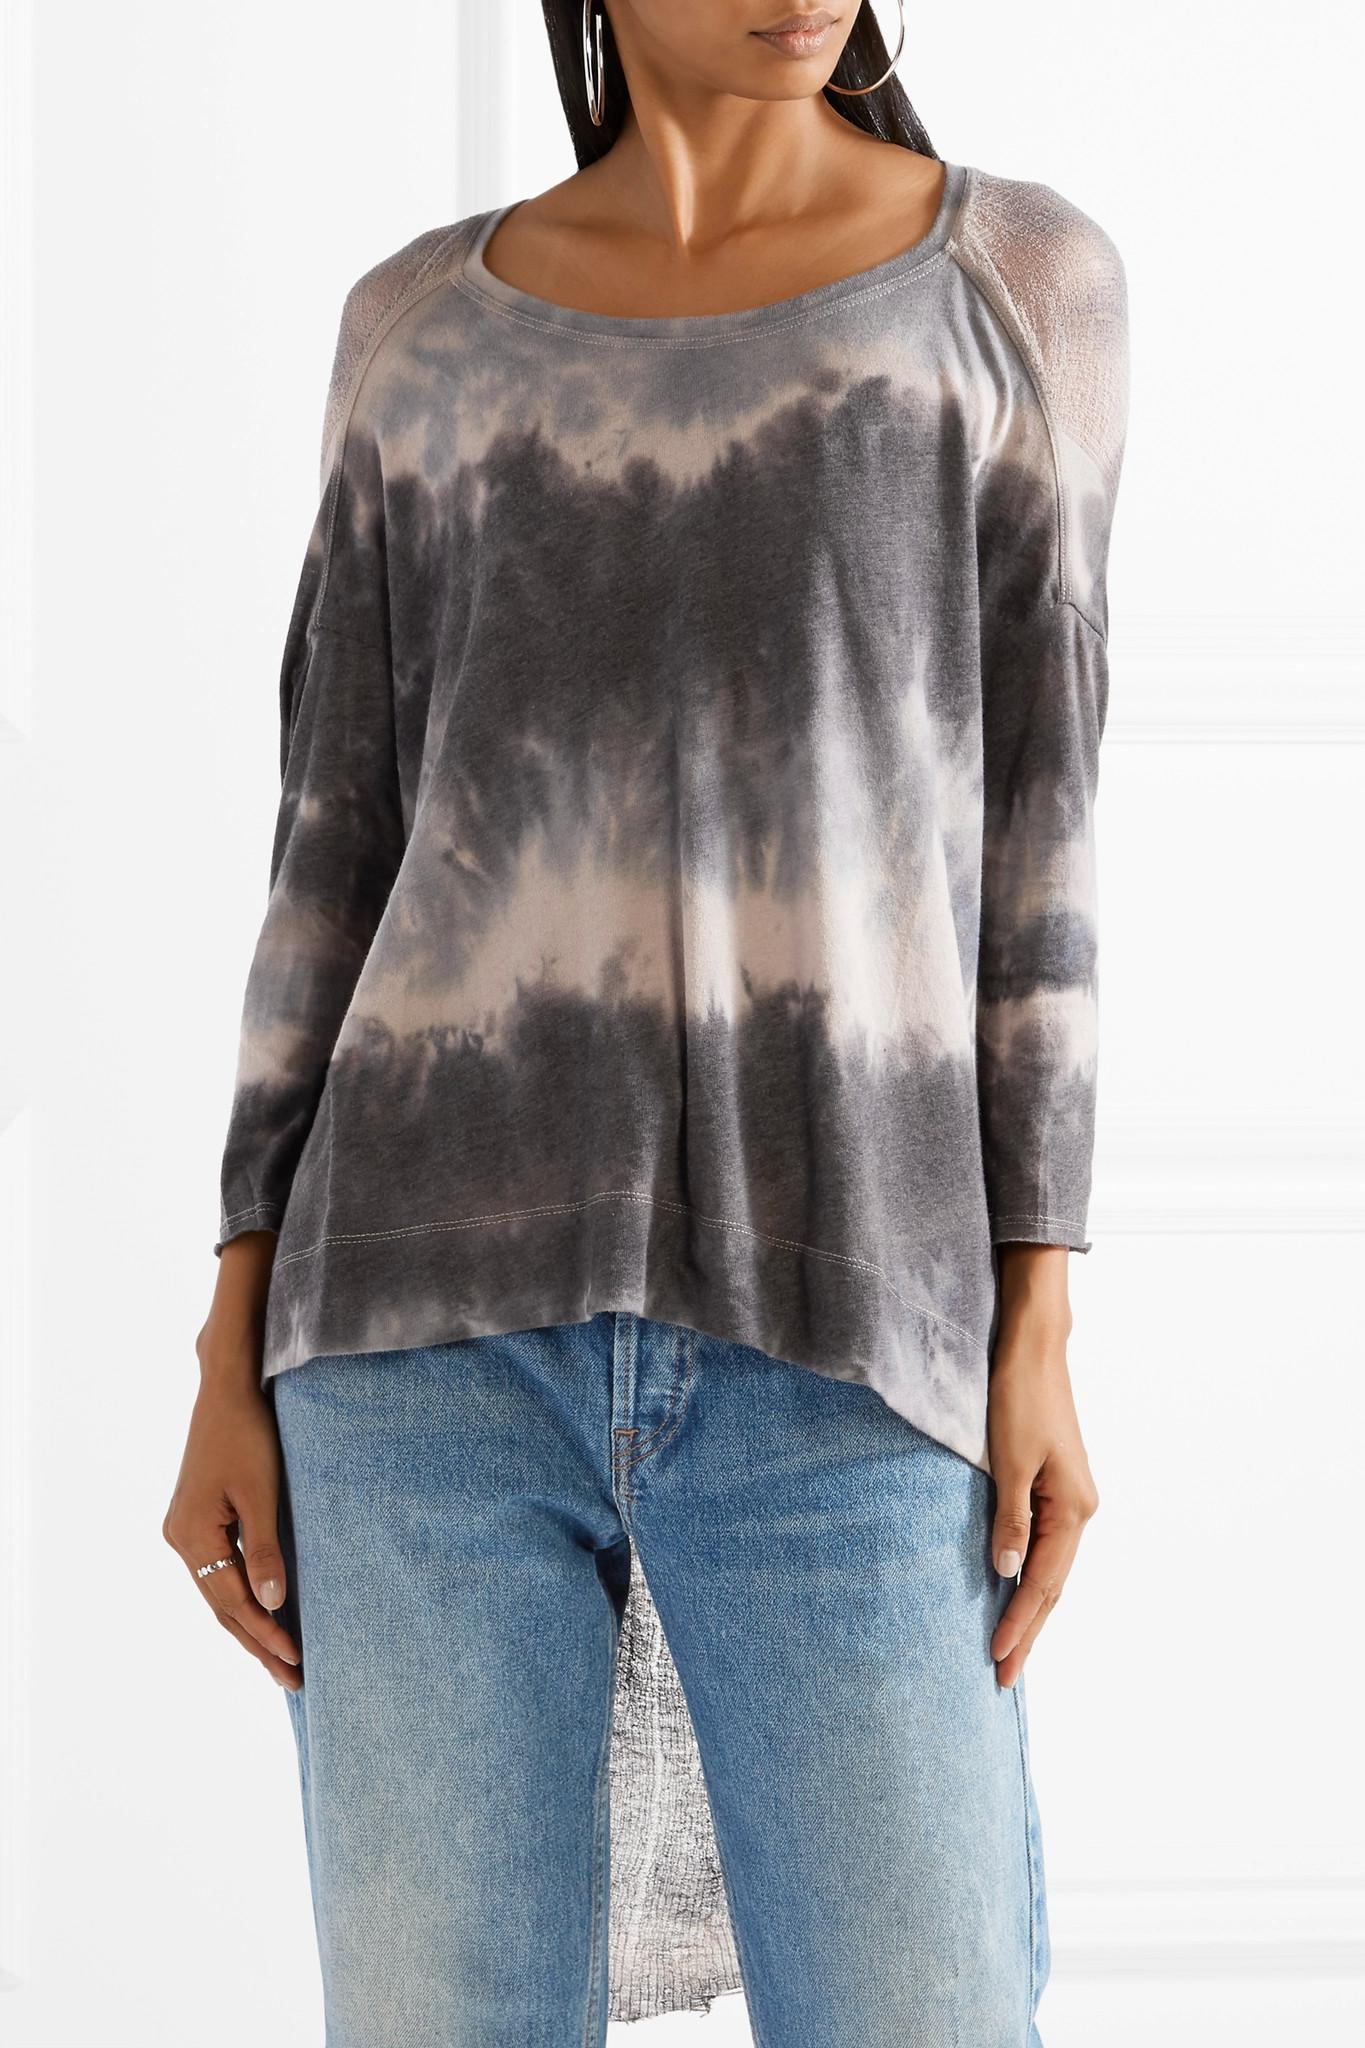 Distressed Tie-dyed Cotton-blend Jersey Top - Gray Raquel Allegra Recommend Online hj7oIh